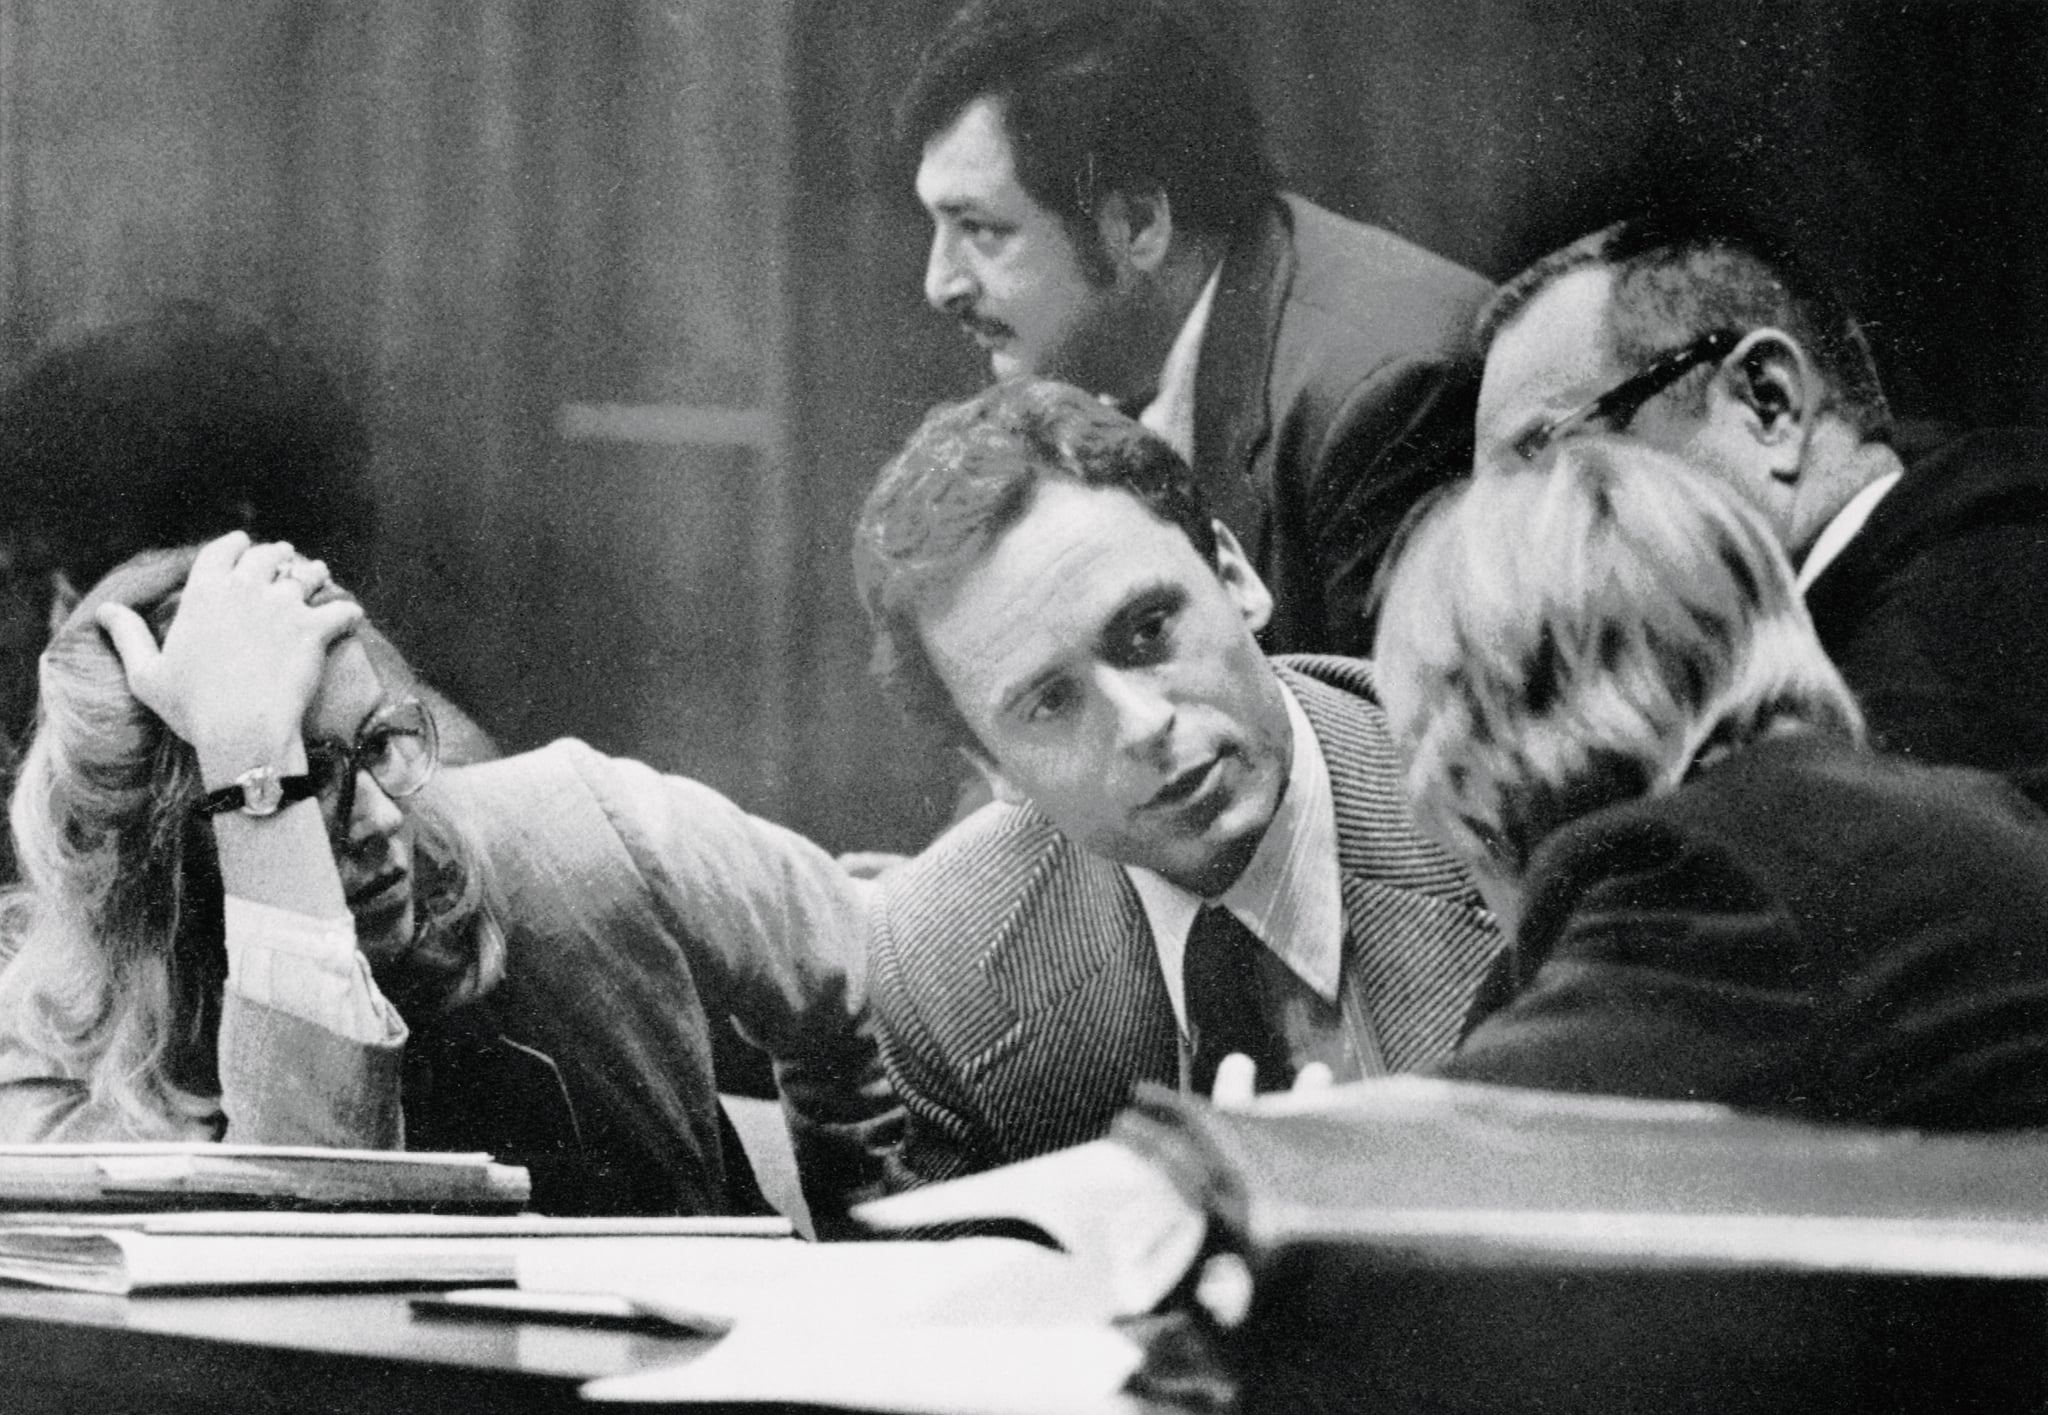 (Original Caption) Accused murderer Theodore Bundy (C) confers with his defence attorneys on the opening day of his trial 6/25. The trial will be televised nationwide as Bundy participates in his own defence, drawing on his experience as a law student. Bundy is accused of killing two FSU coeds.